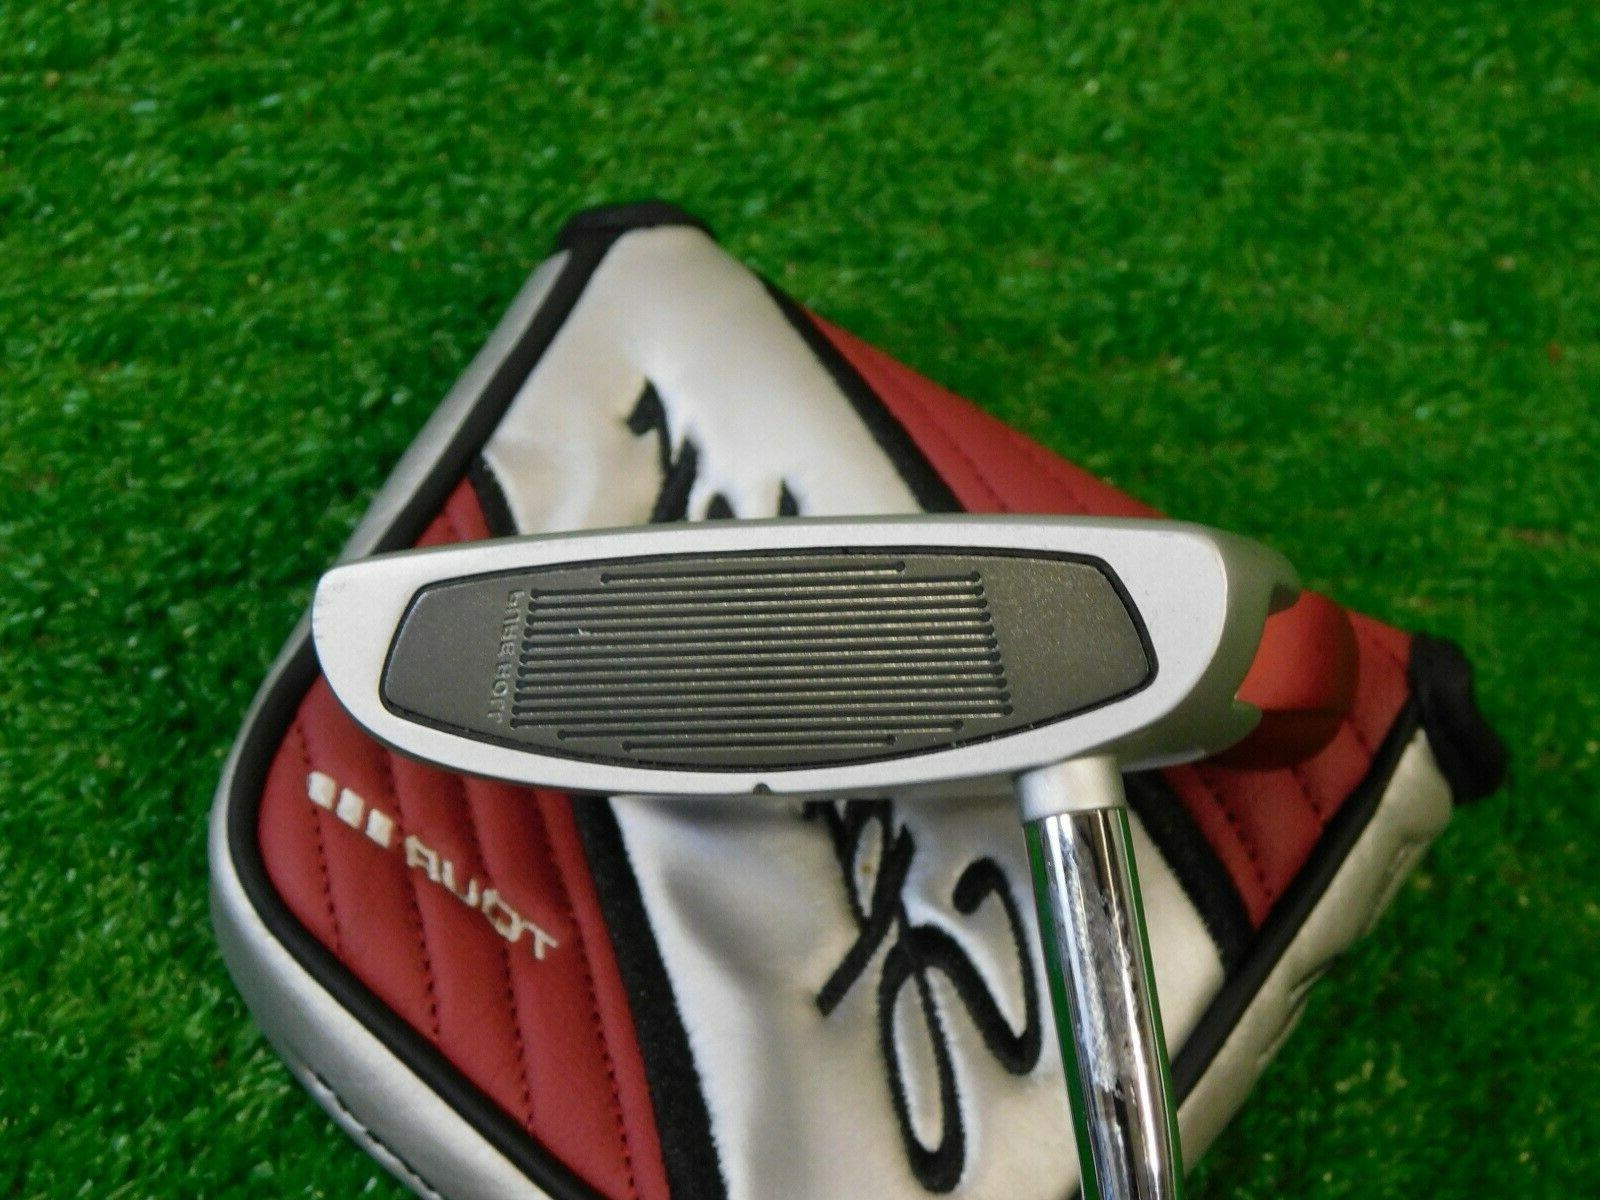 TaylorMade Spider Counterbalanced Putter HC Super Stroke